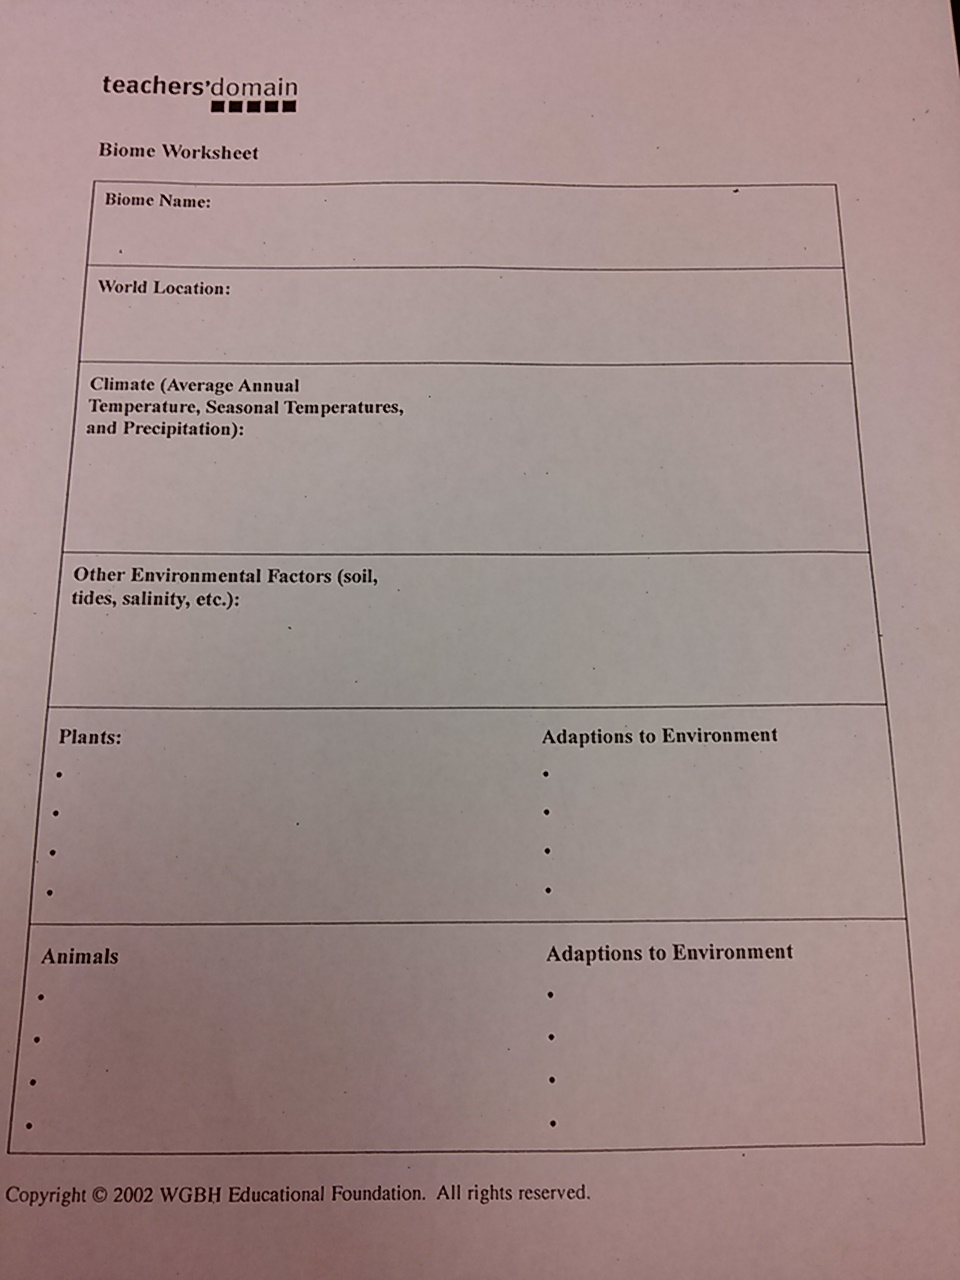 Worksheets Biomes Worksheet solved biomes worksheet total 6 in form below pl question plz help